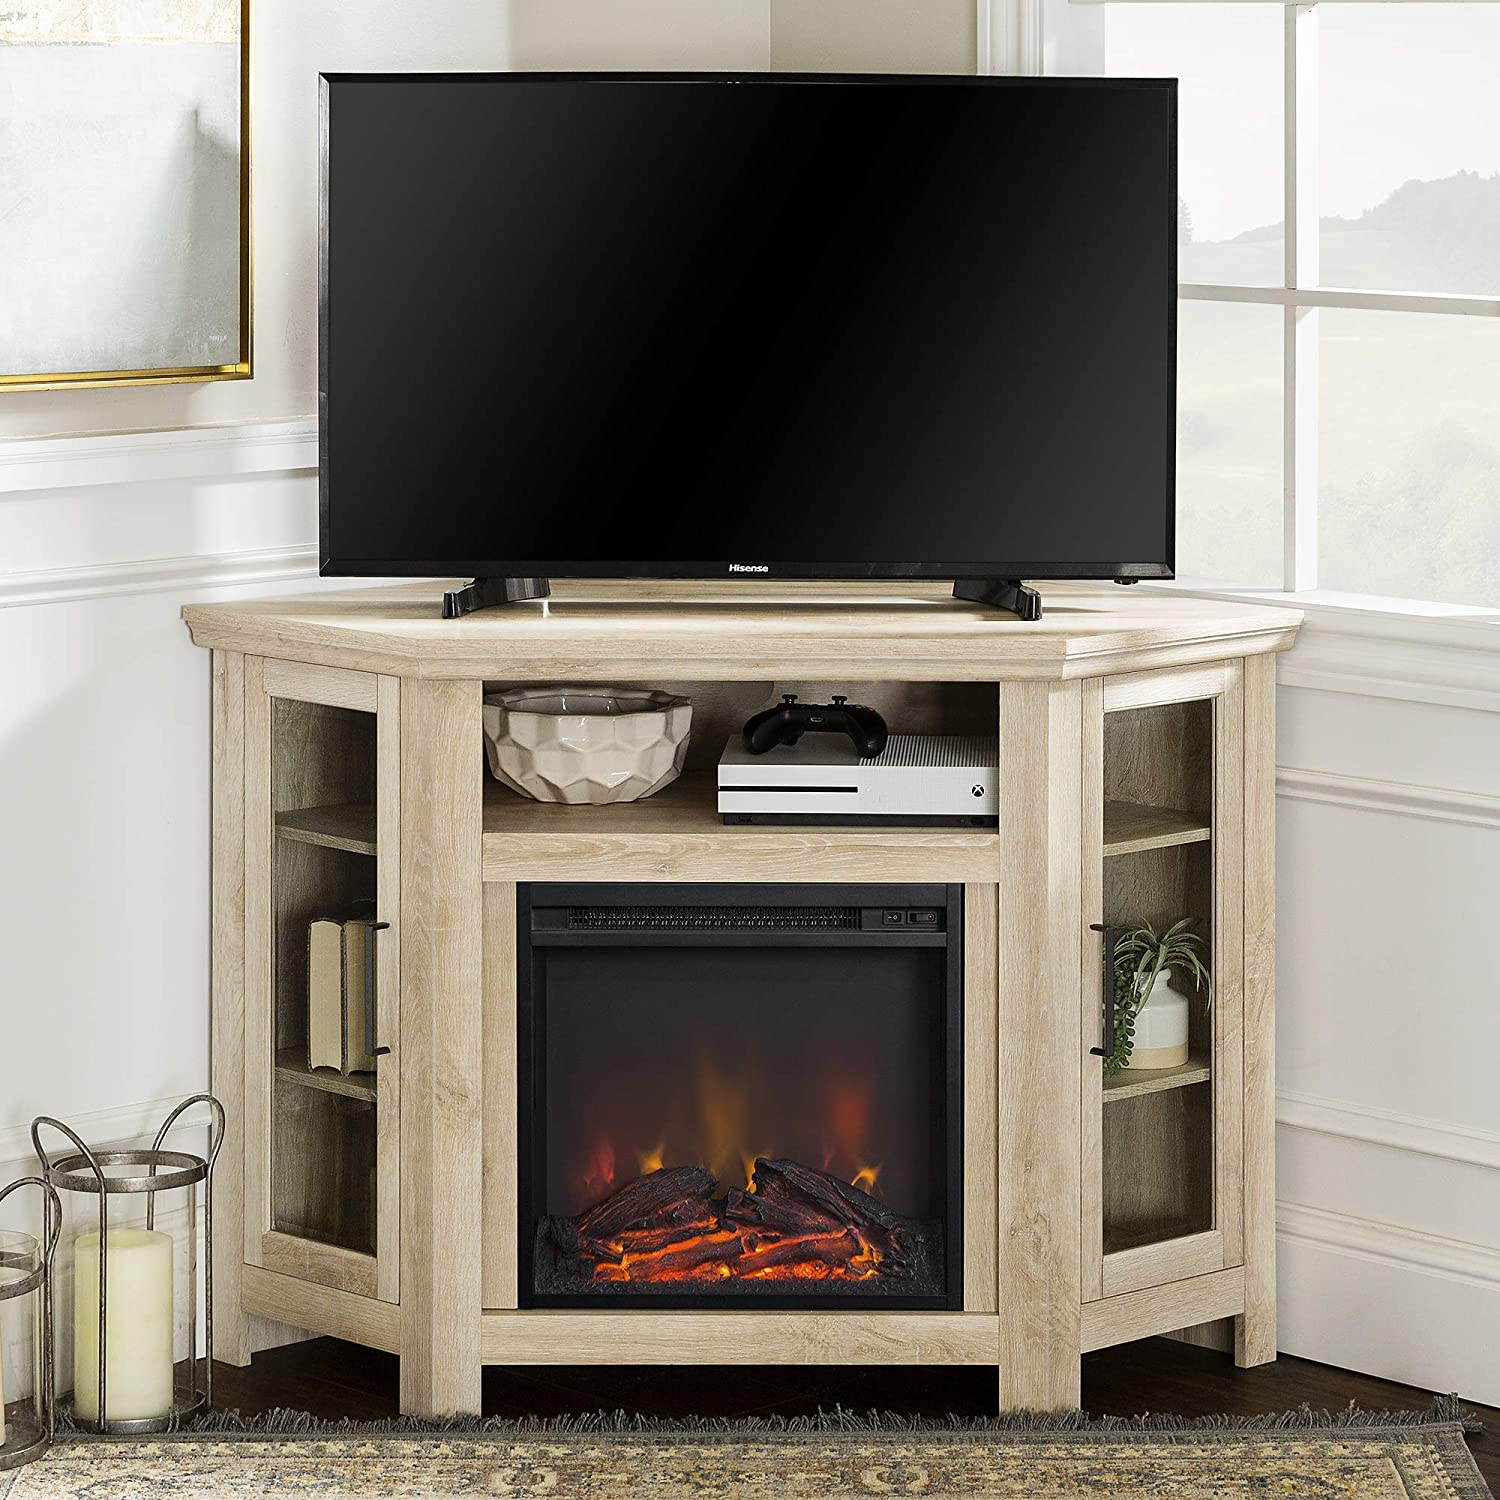 Walker Edison Tall Wood Corner Fireplace Stand for TV's